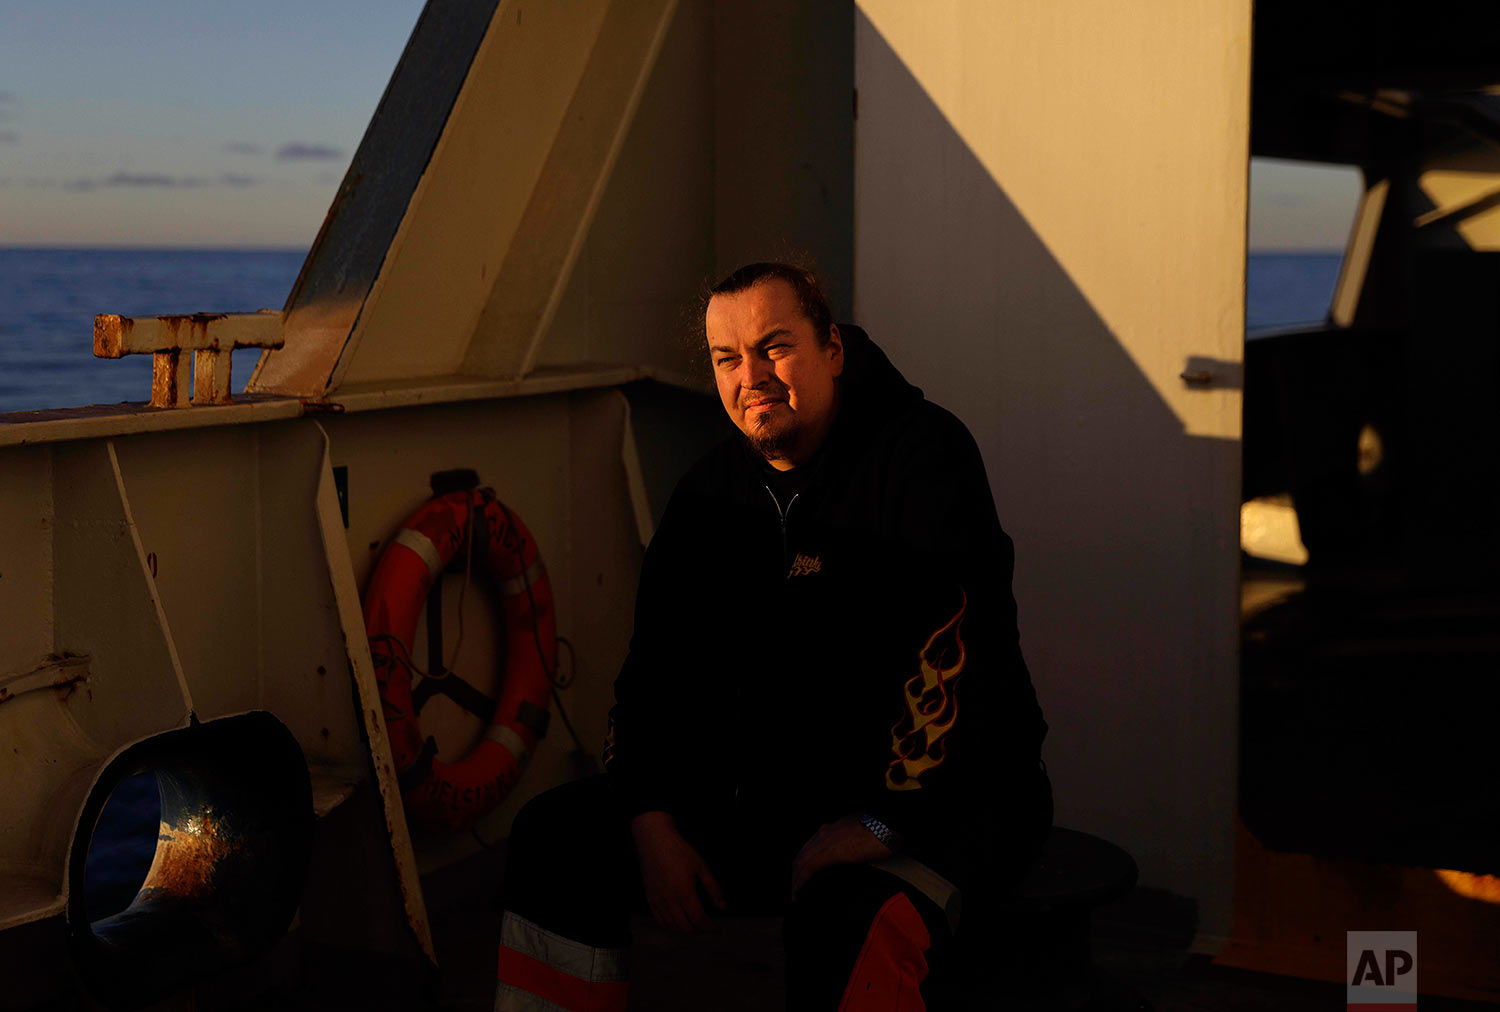 """Deck repairman Mika Koponen, 41, sits for a portrait aboard the Finnish icebreaker MSV Nordica as the ship sails the Amundsen Gulf in the Arctic, Wednesday, July 19, 2017. Koponen, who is making his first traverse through the Northwest Passage, started sailing at the age of 15 after following in his brother's footsteps. """"He was my idol. He sent me postcards from everywhere in the world,"""" said Koponen of his brother who passed away five years ago. """"After he became sick, I became his idol because he couldn't sail anymore. Now I'm taking these amazing adventures and I keep the tradition of the postcards. I think he'd be proud."""" (AP Photo/David Goldman)"""